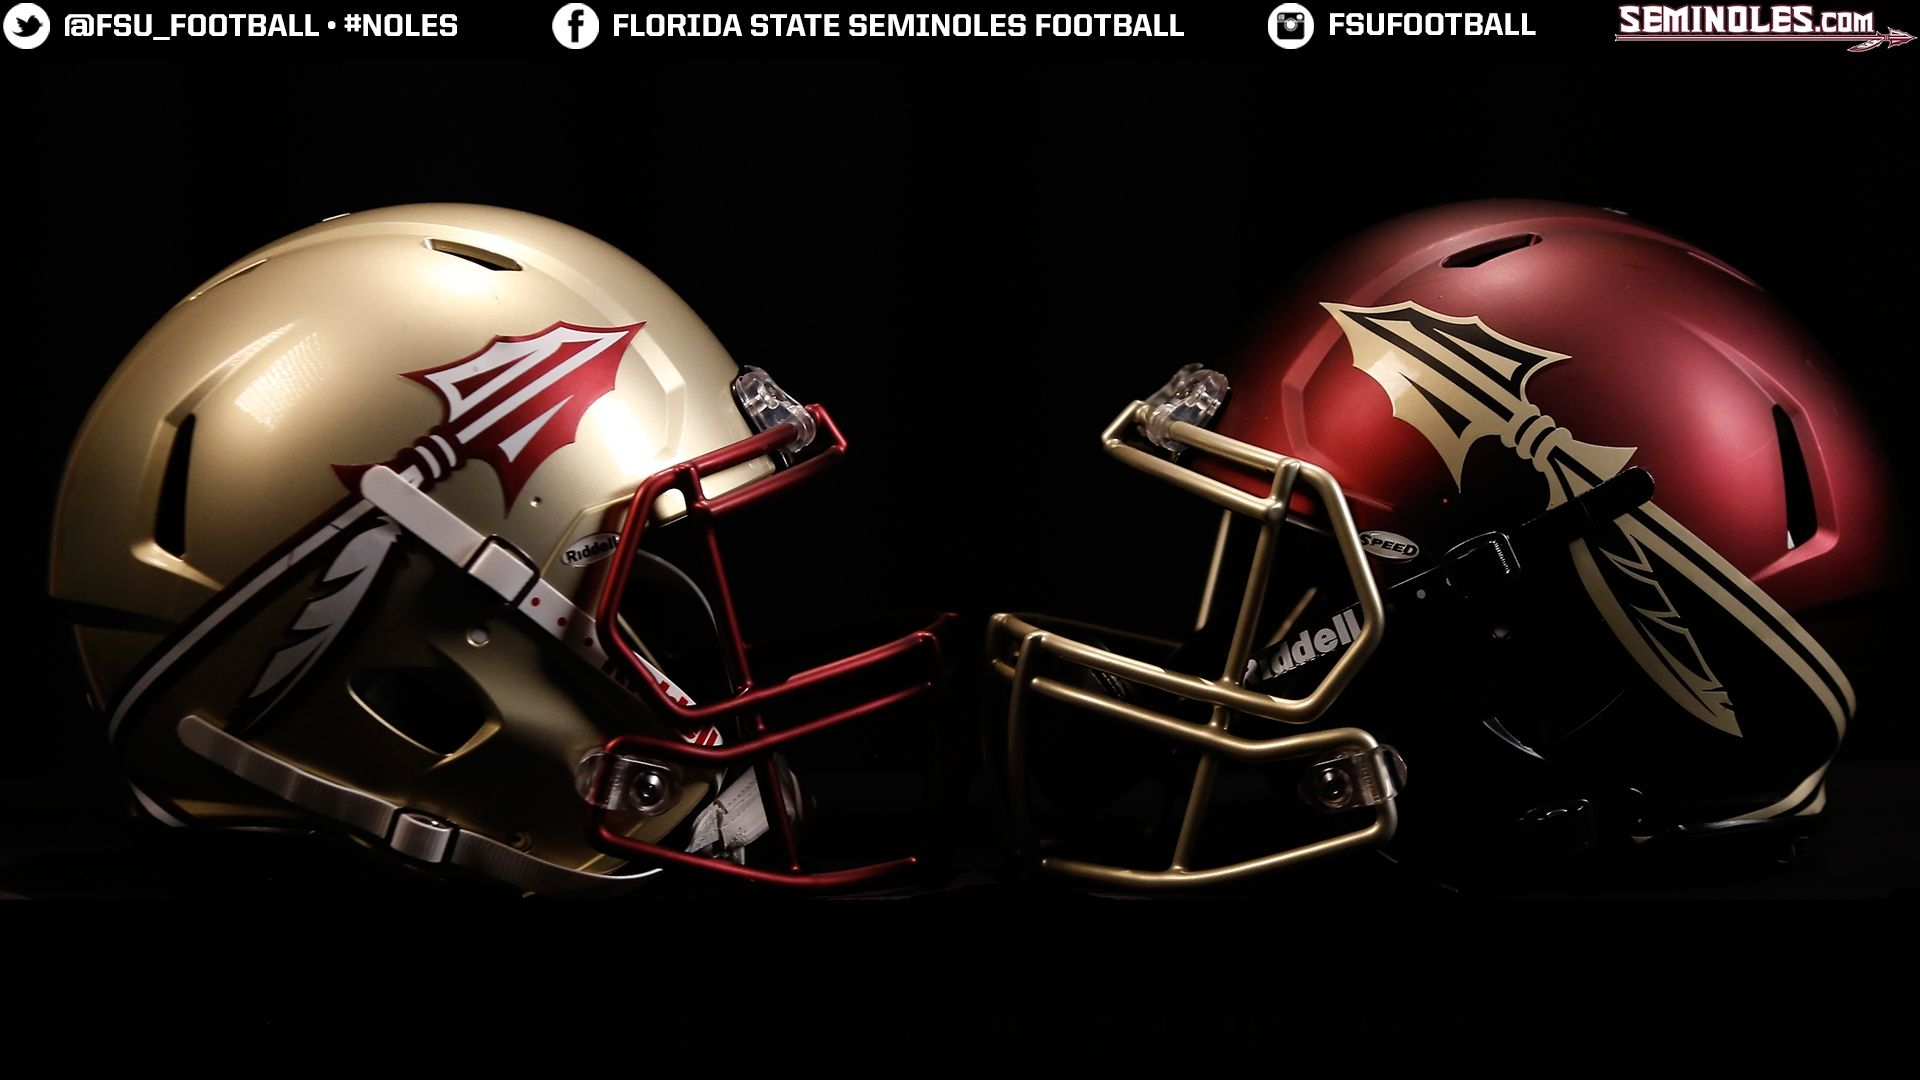 Florida state football iphone wallpaper download best florida florida state football iphone wallpaper download best florida state football iphone wallpaperfor iphone wallpaper inhigh quality voltagebd Image collections